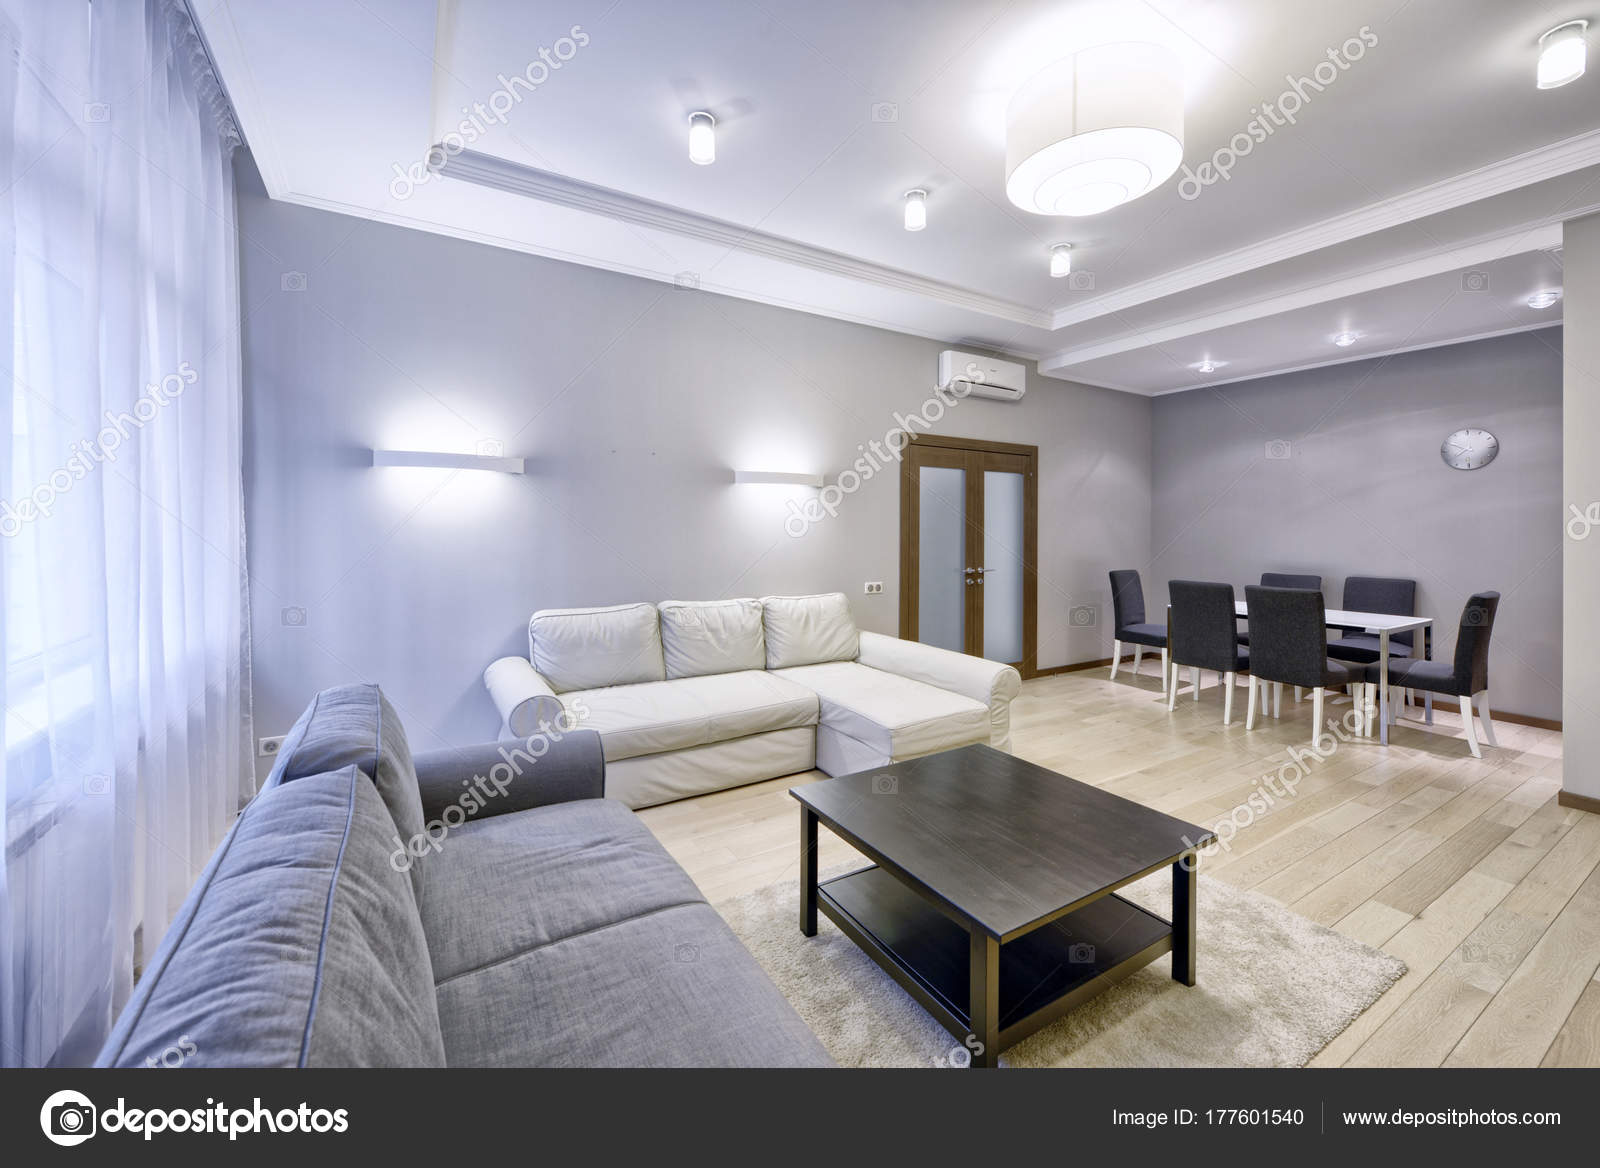 Interior design moderno sala estar apartamento luxo tons for Interior design moderno